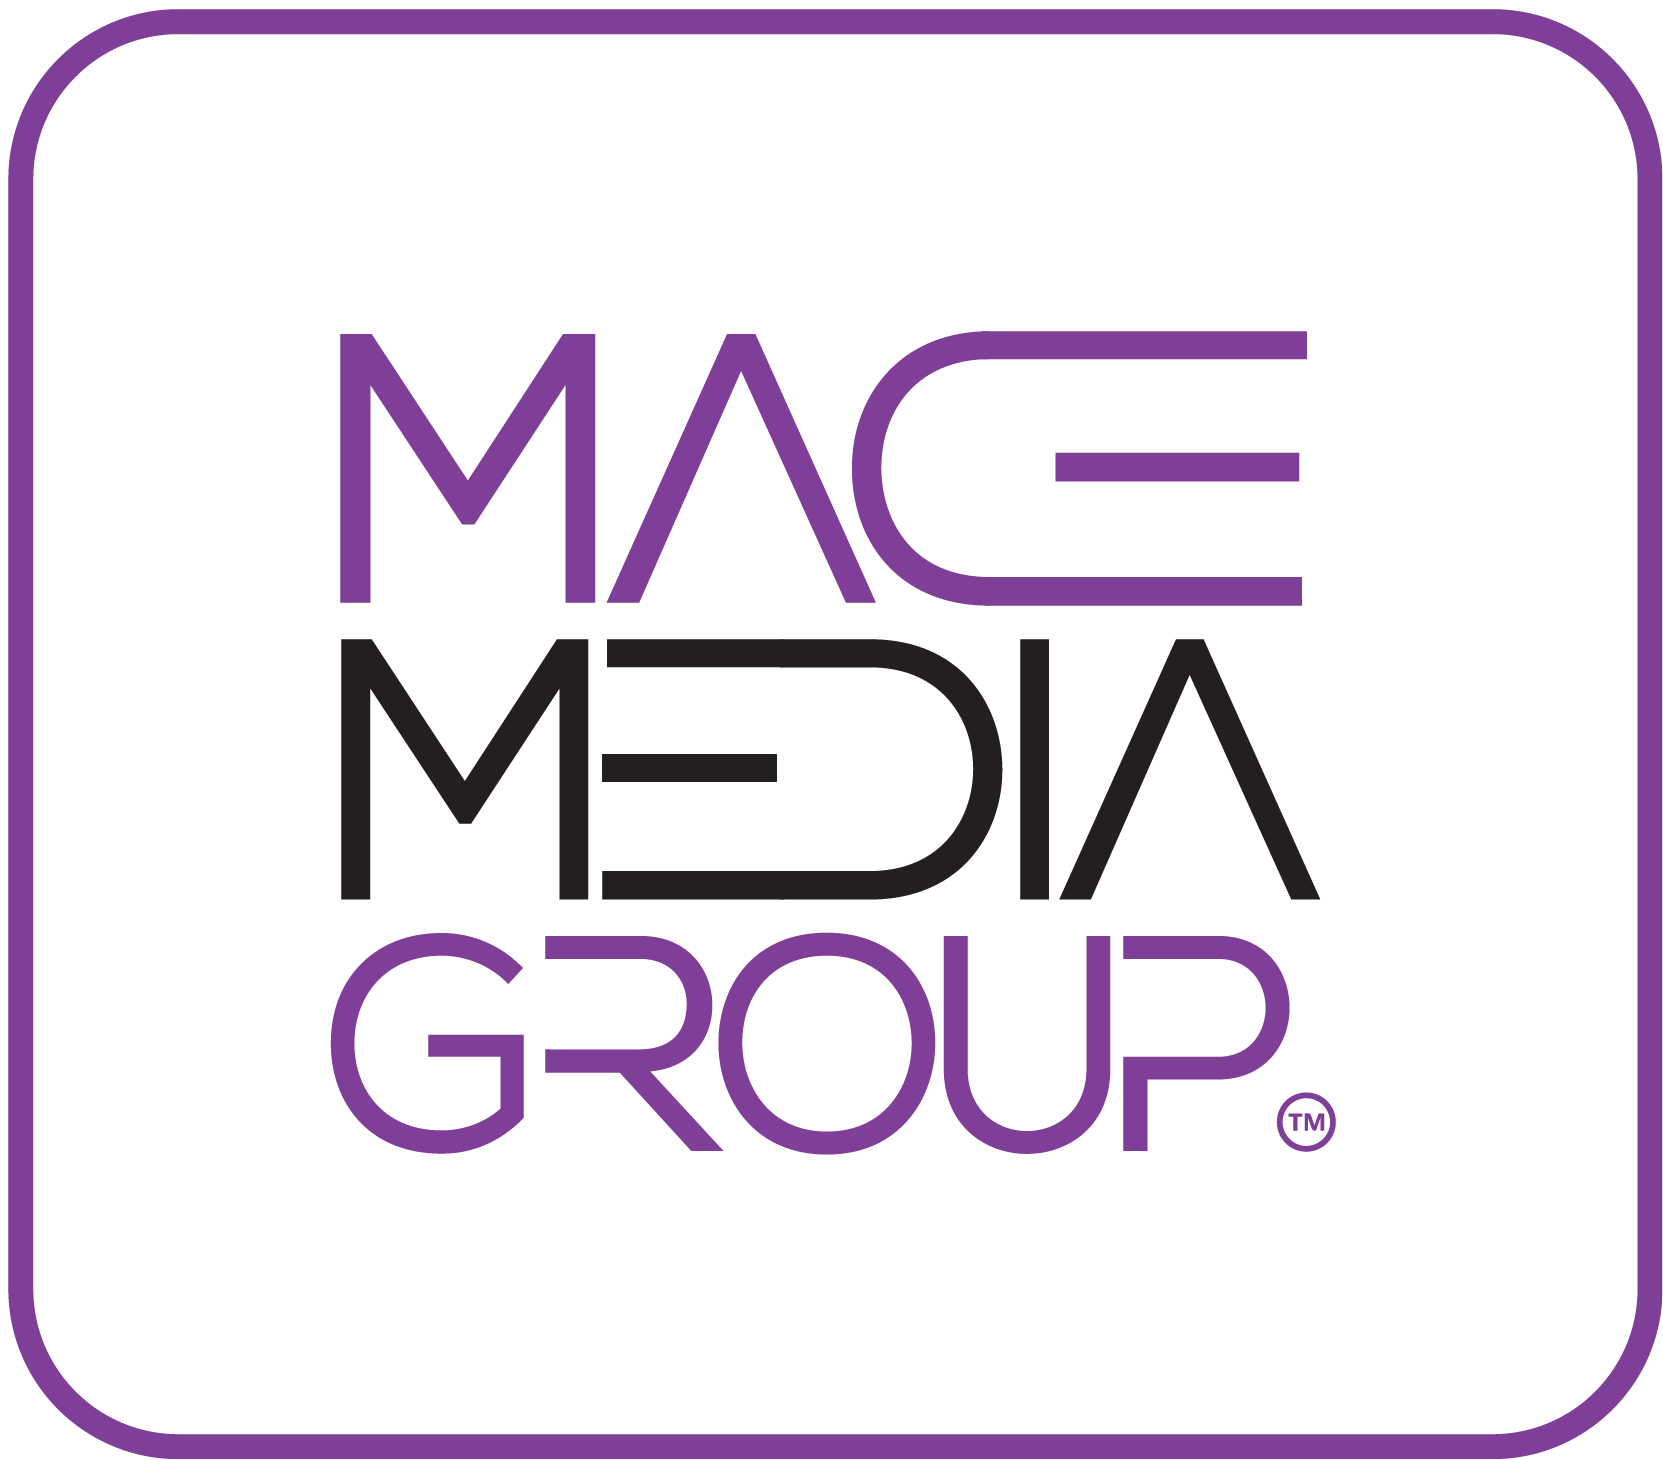 Mace Media Group